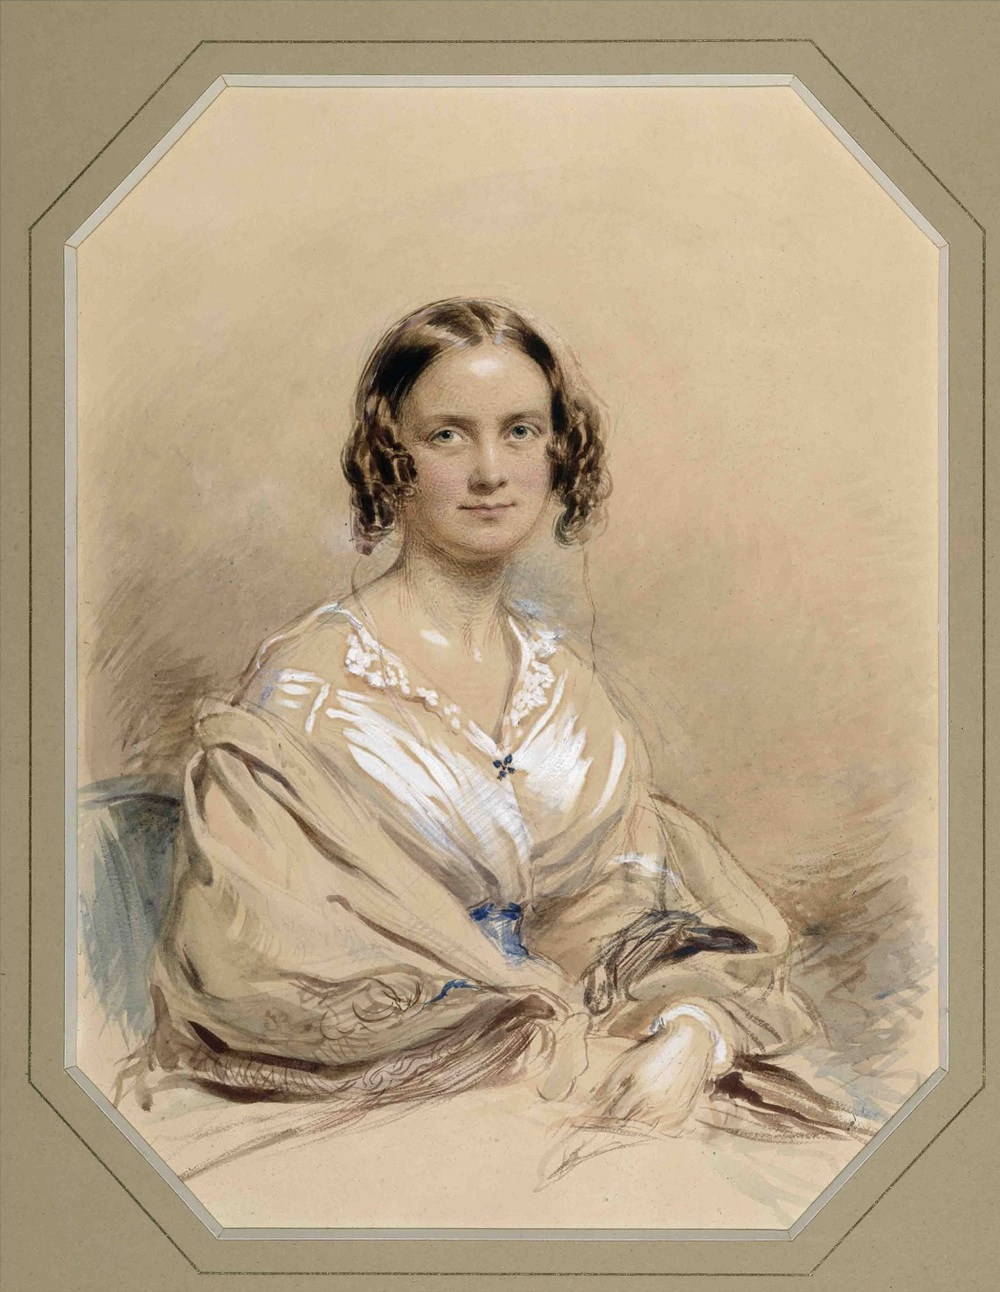 And this is my wife, Emma Darwin, for those of you who have not seen her beautiful countenance. I hope you will come to know her better through my blog. This painting of her was done by our friend George Richmond in 1840, the year after we were married. Emma was then 32 years old and I was 31.